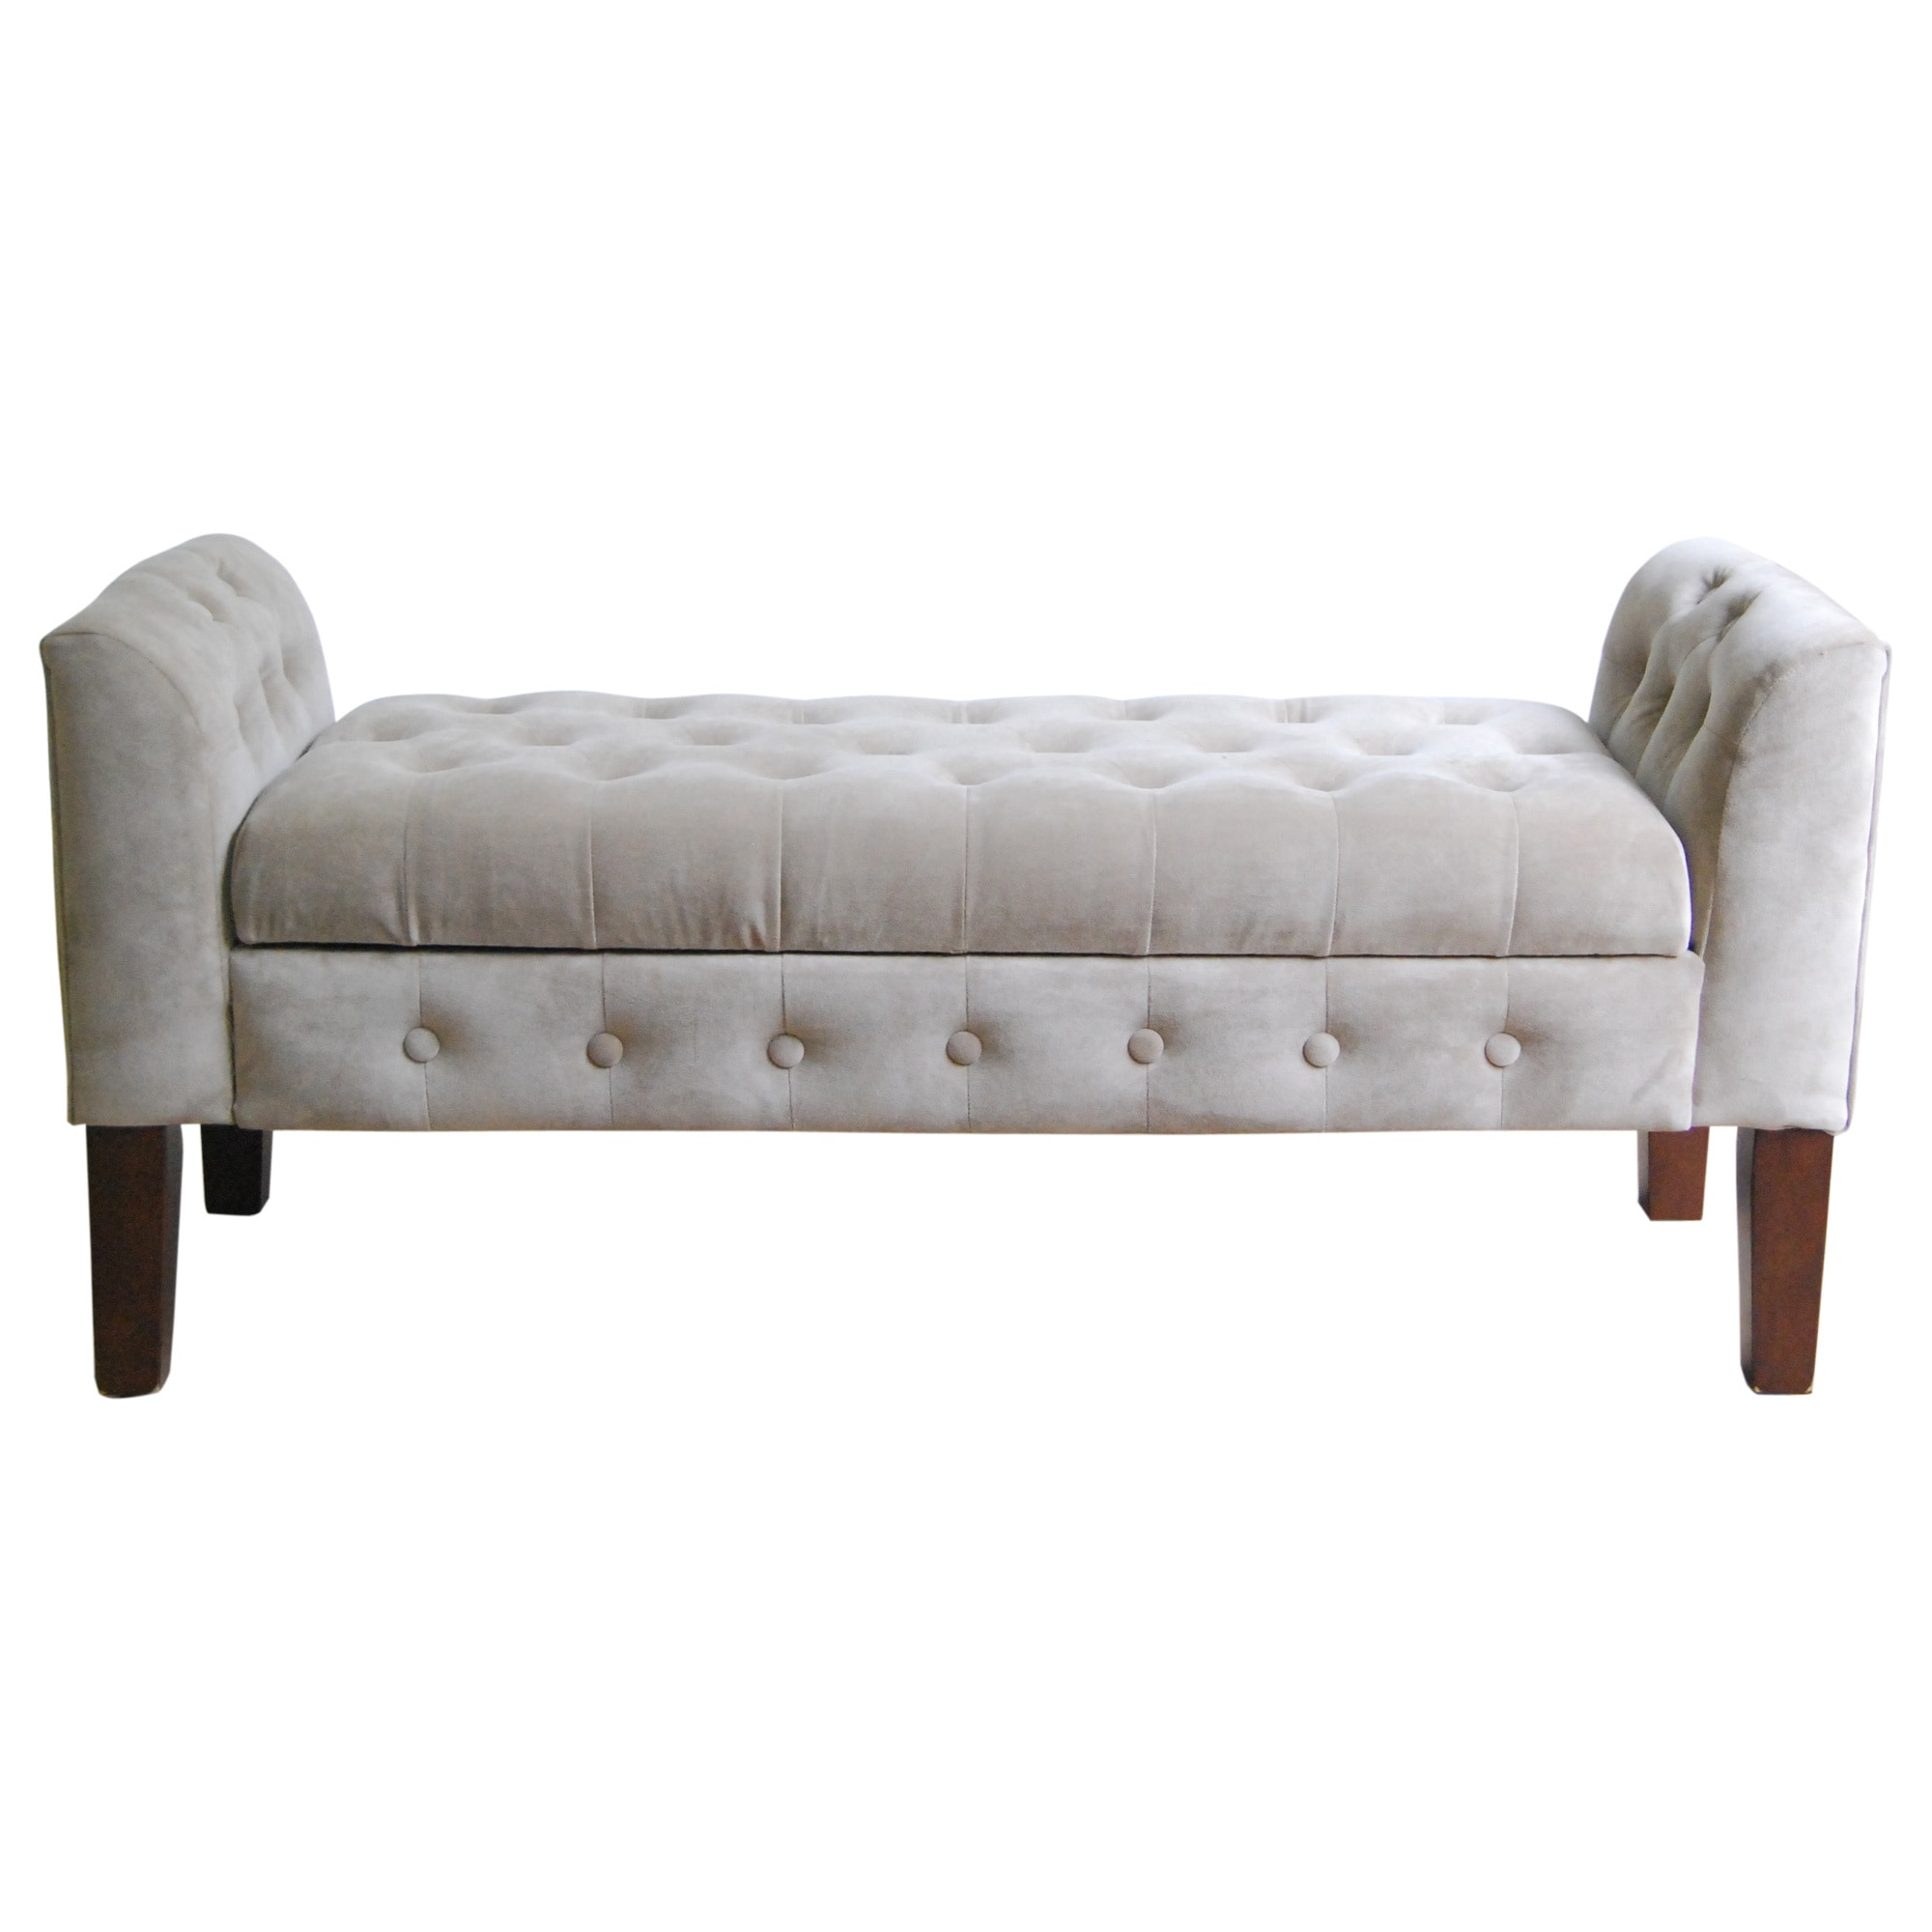 HomePop Tufted Velvet Storage Bench Settee